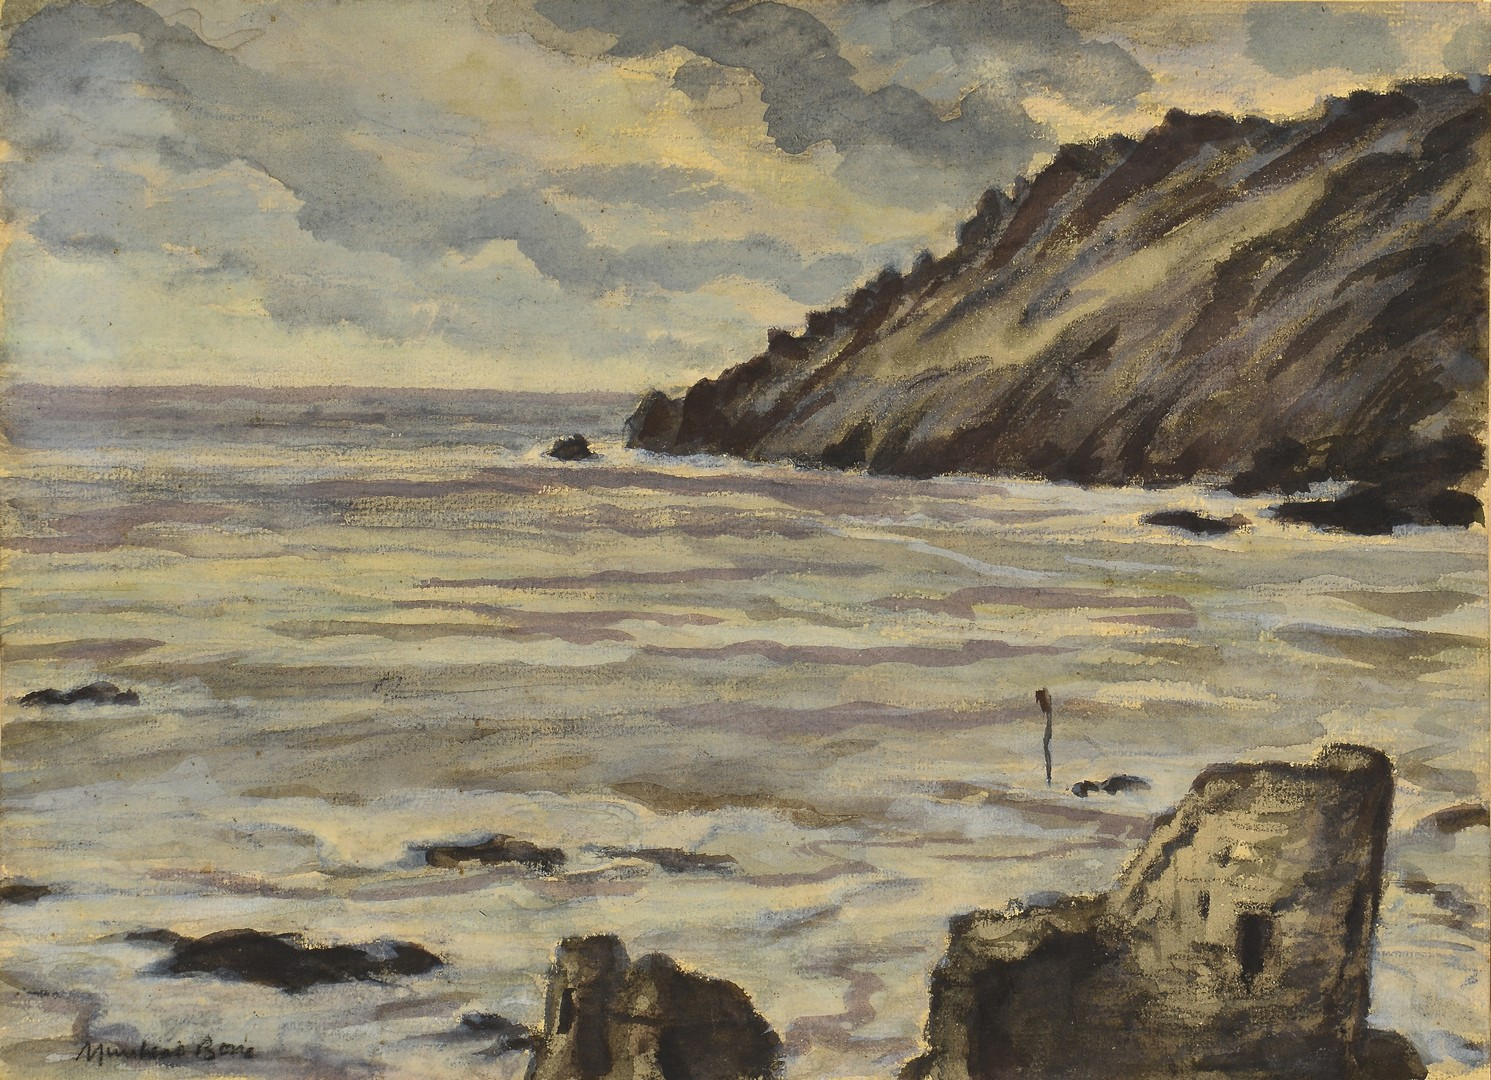 Lot 459: Muirhead Bone Seascape Watercolor